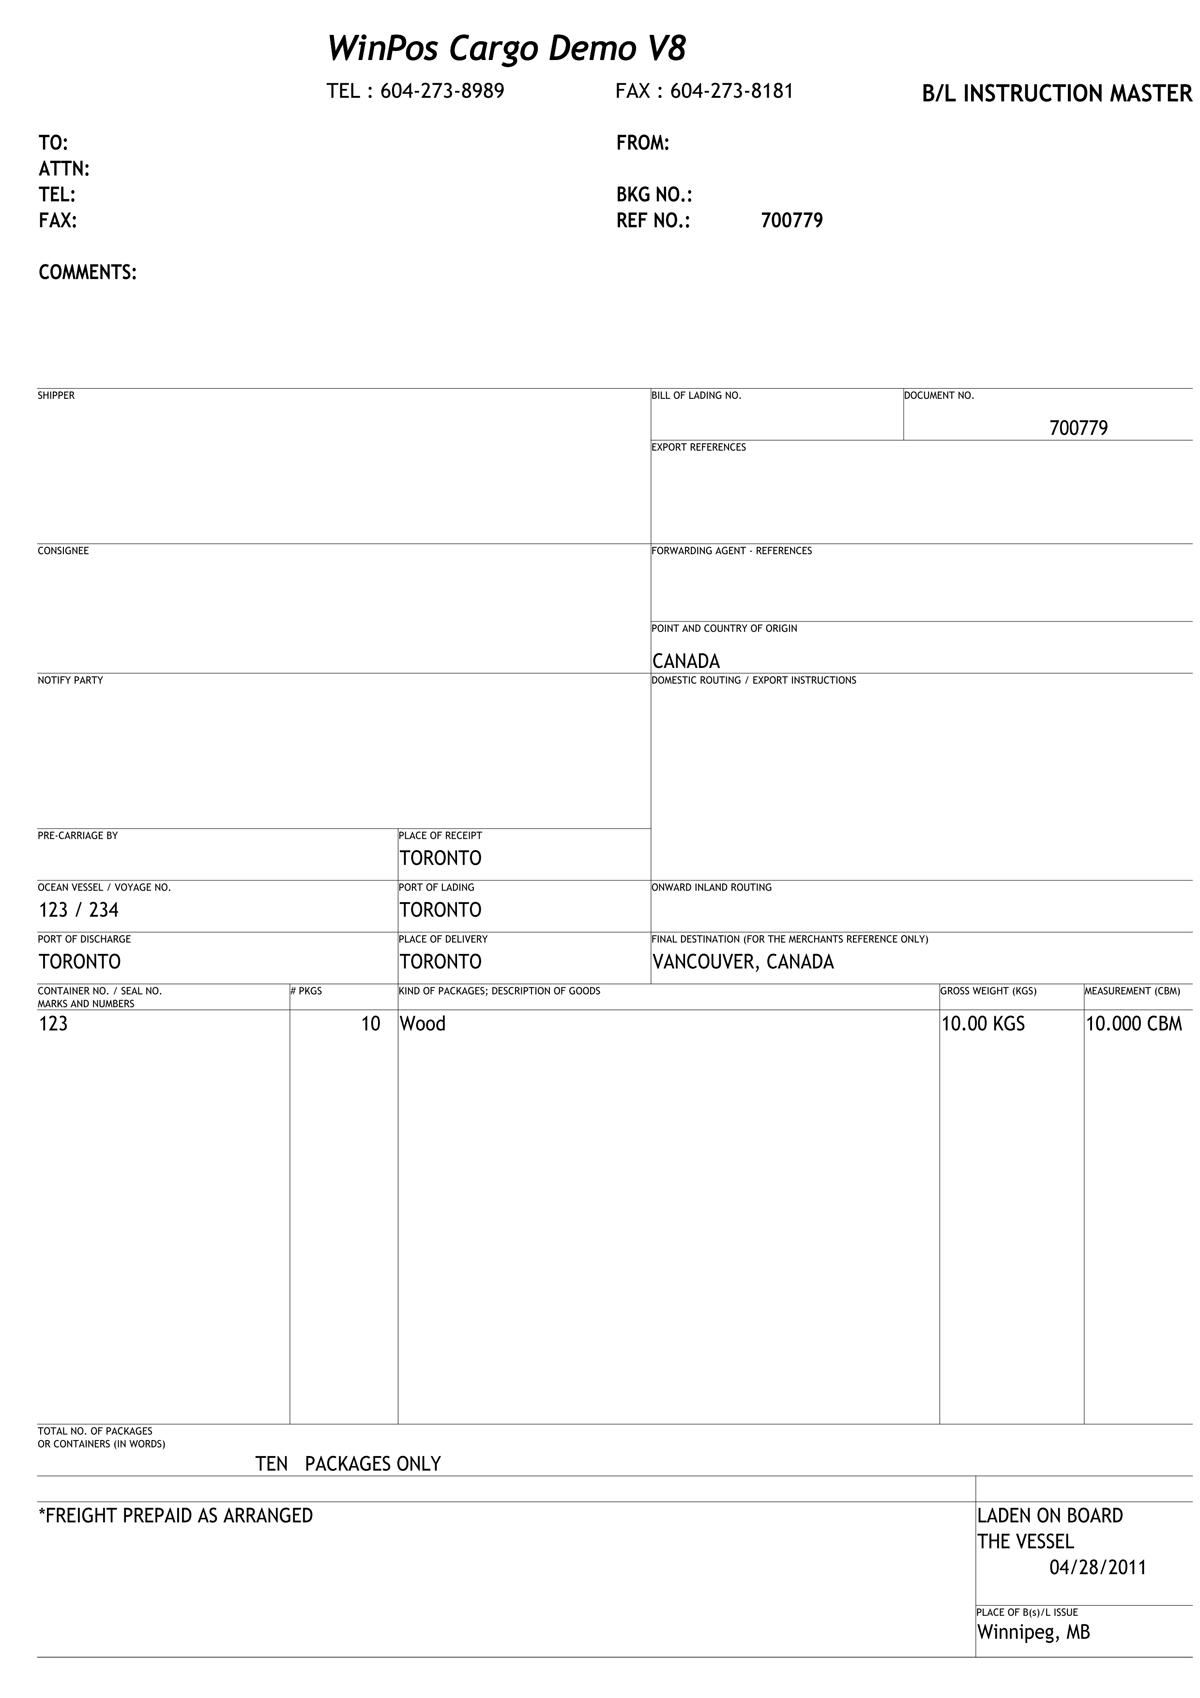 How To Do An Invoice For Work Pdf Aptus Systems Inc Word Invoice Template with Guest Receipt Pdf  Export Invoice  Lumper Receipt Excel